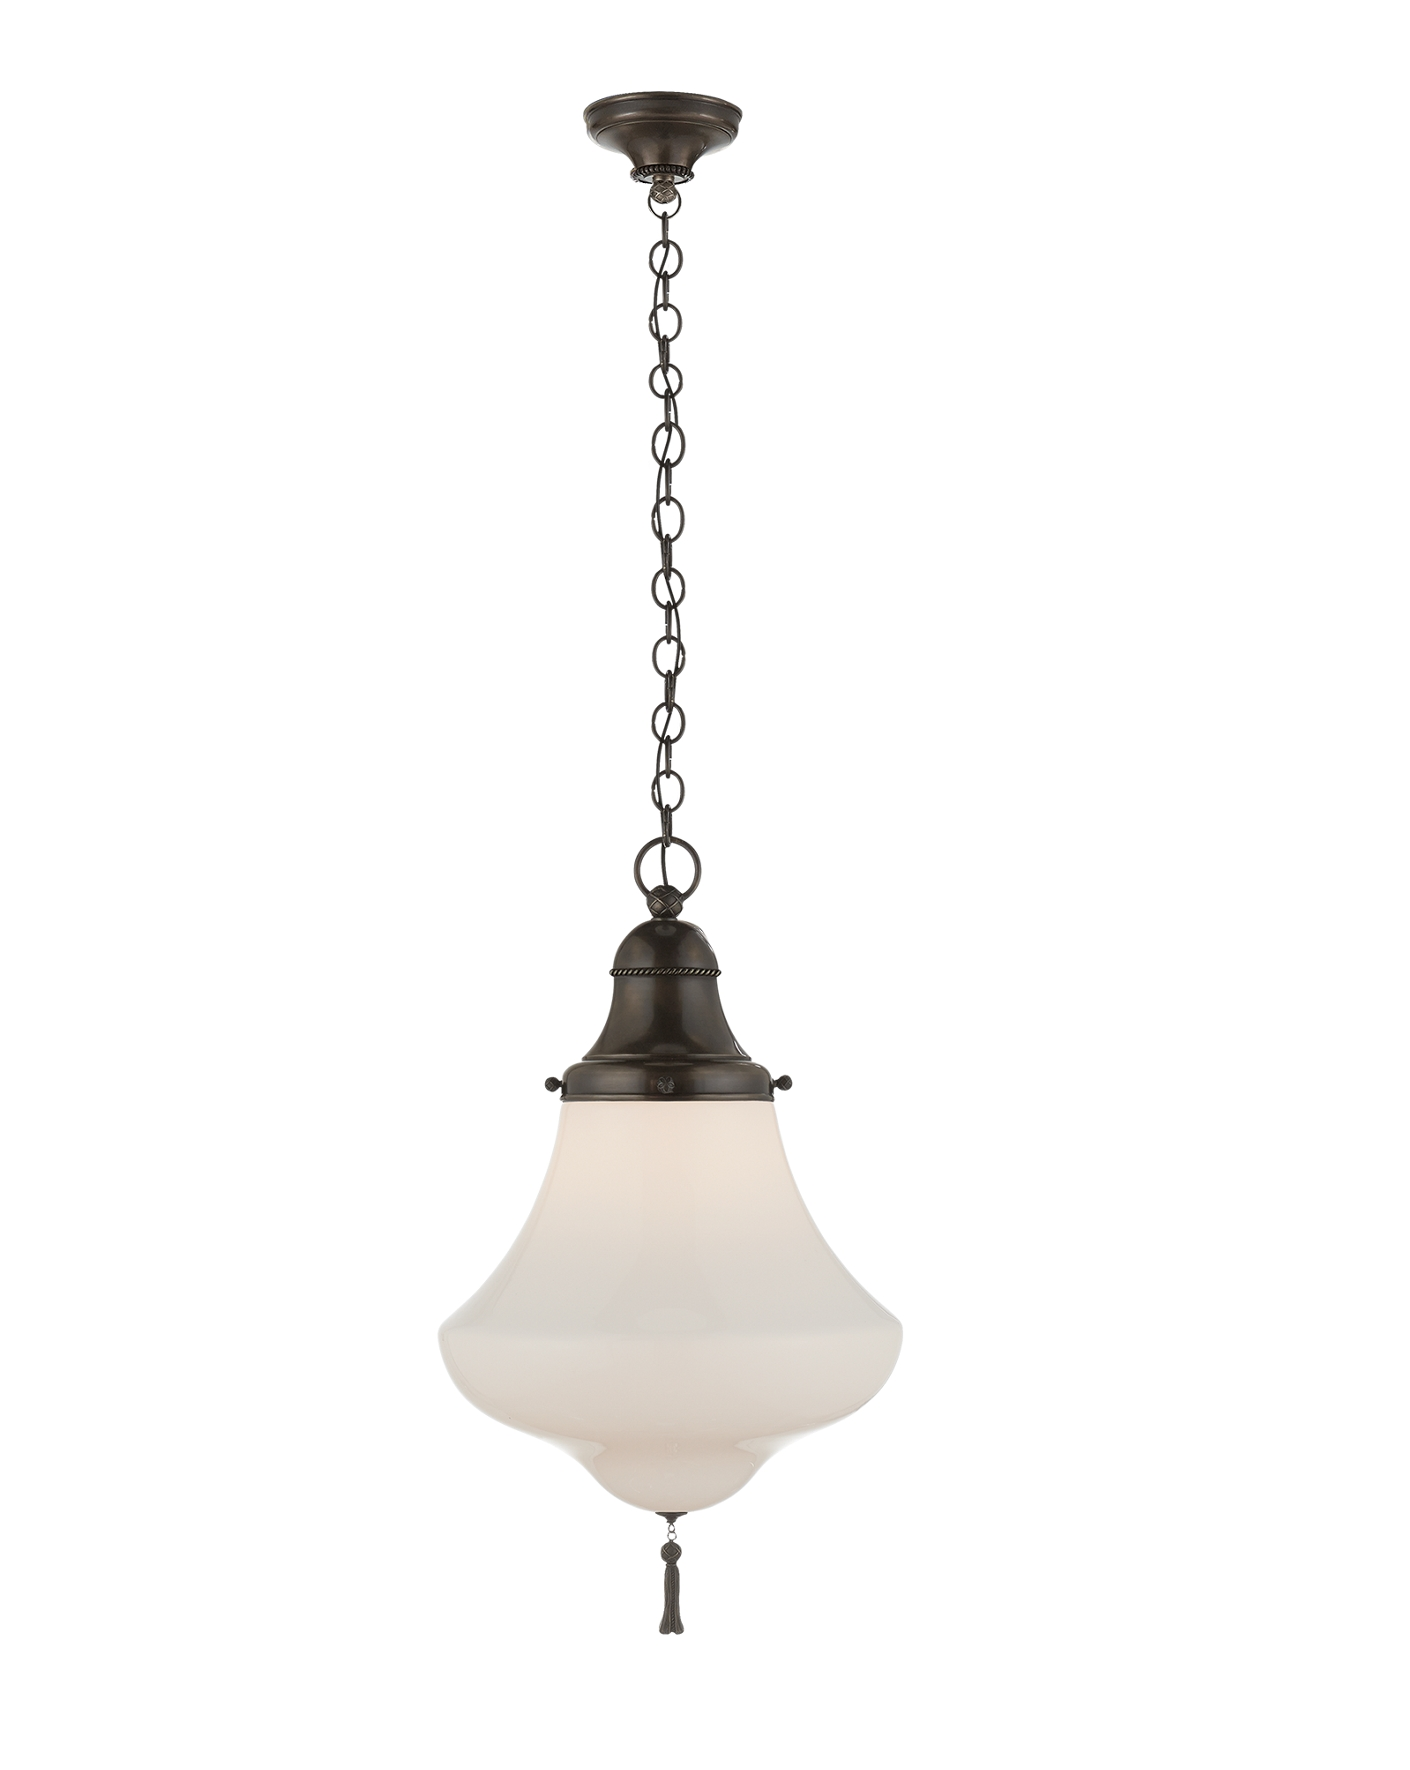 xavier small pendant  lighting fixtures lighting  ralphlaurencom -  lighting fixtures  ralphlaurencom mouse over to zoom